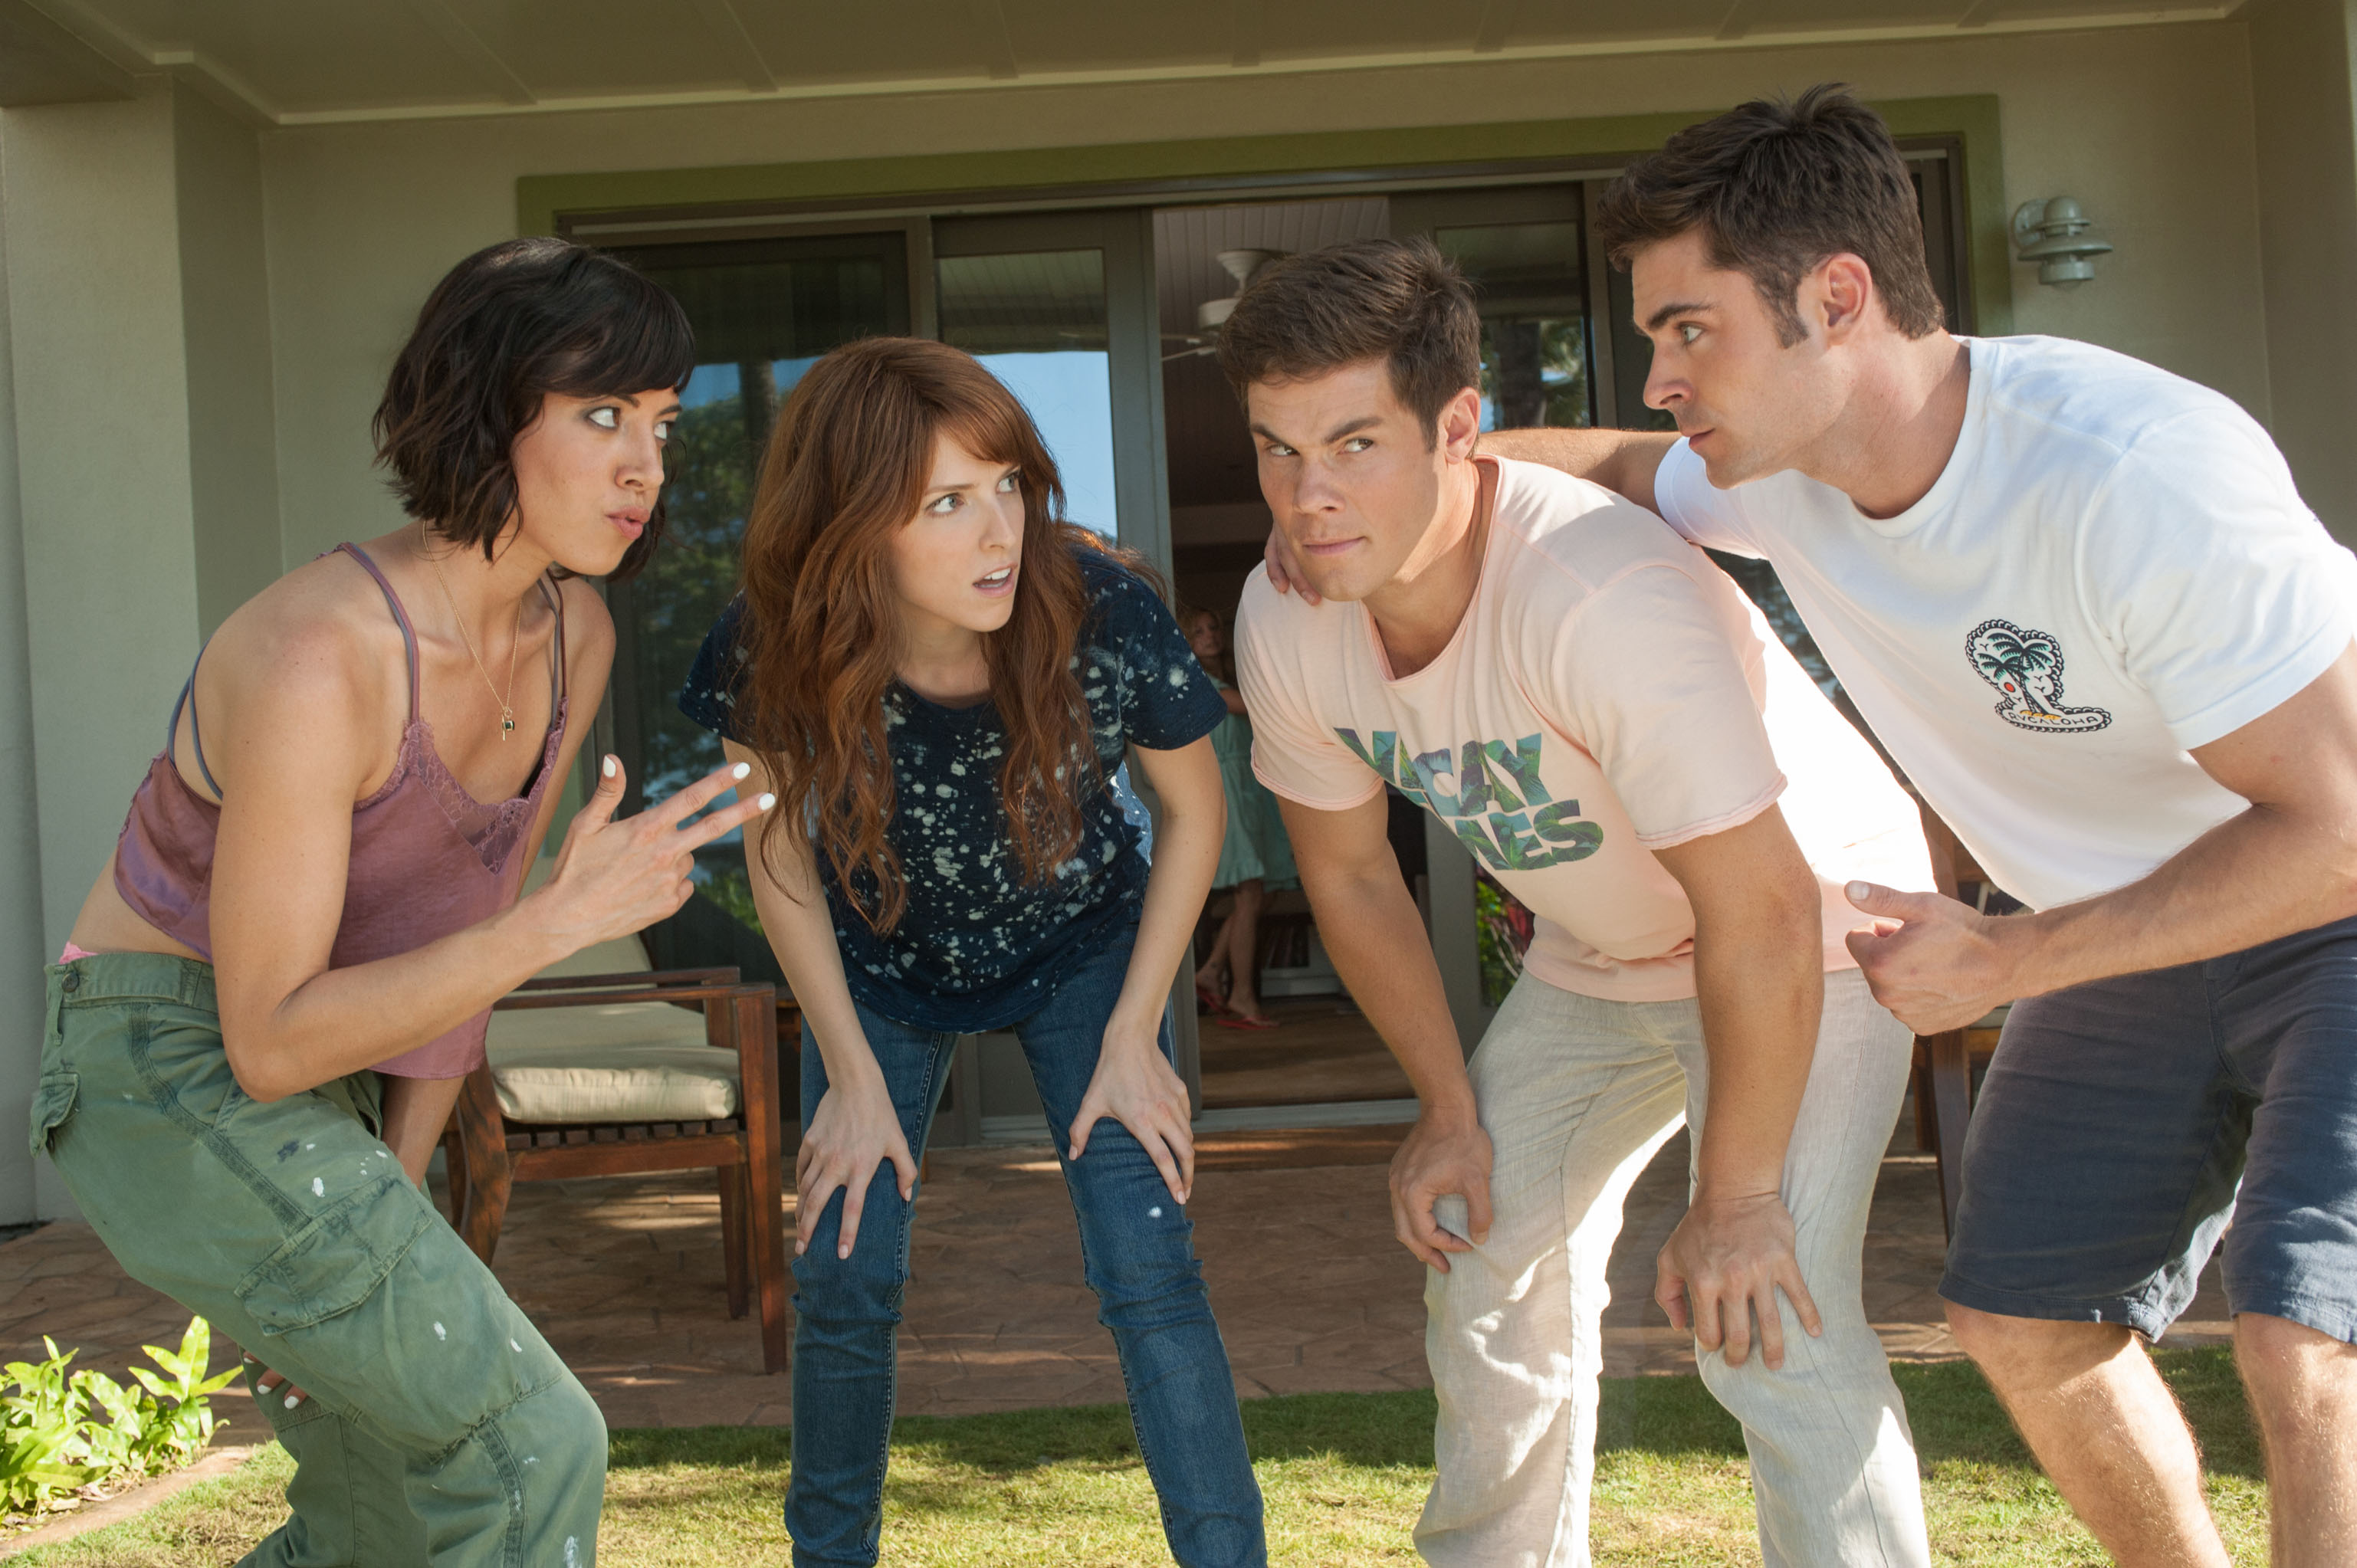 (From left) Tatiana (Aubrey Plaza) and Alice (Anna Kendrick) get to know their dates, Mike (Adam Devine) and Dave (Zac Efron). Photo Credit: Gemma LaMana.